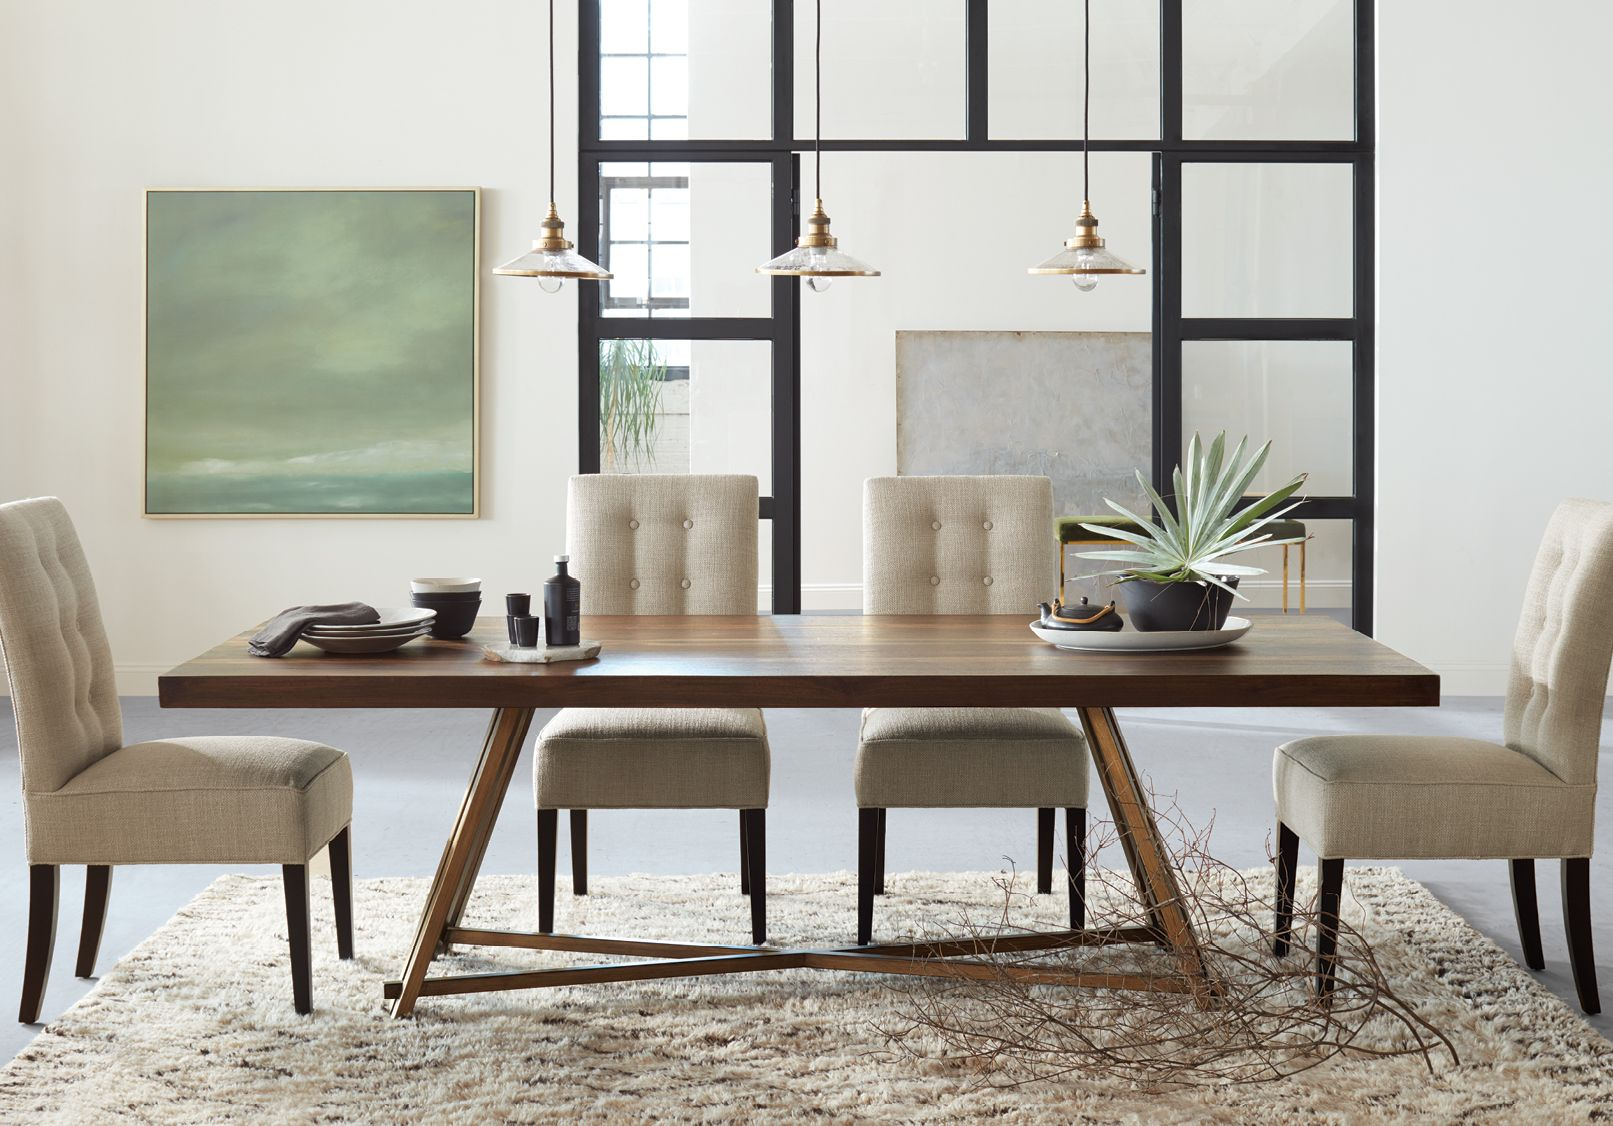 The Nika Dining Table Pairs Structured Lines With The Organic Beauty Of Reclaimed Wood Preser Brass Dining Table Dining Table Lighting Dining Table In Kitchen